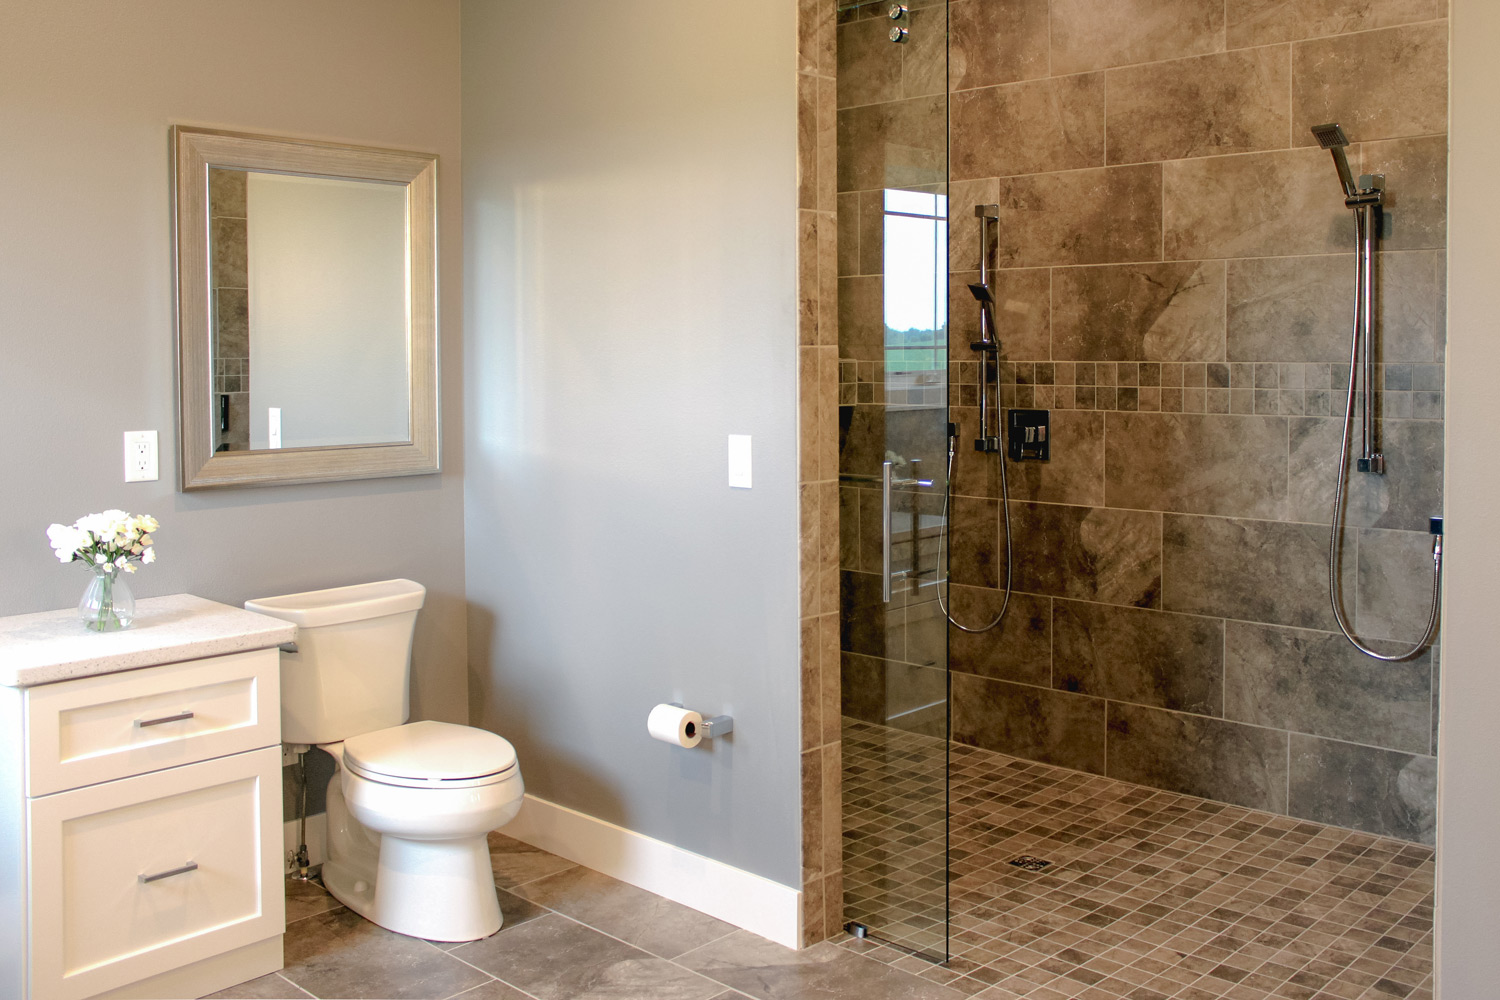 A Shower with Wheelchair Access and Sliding Glass Door